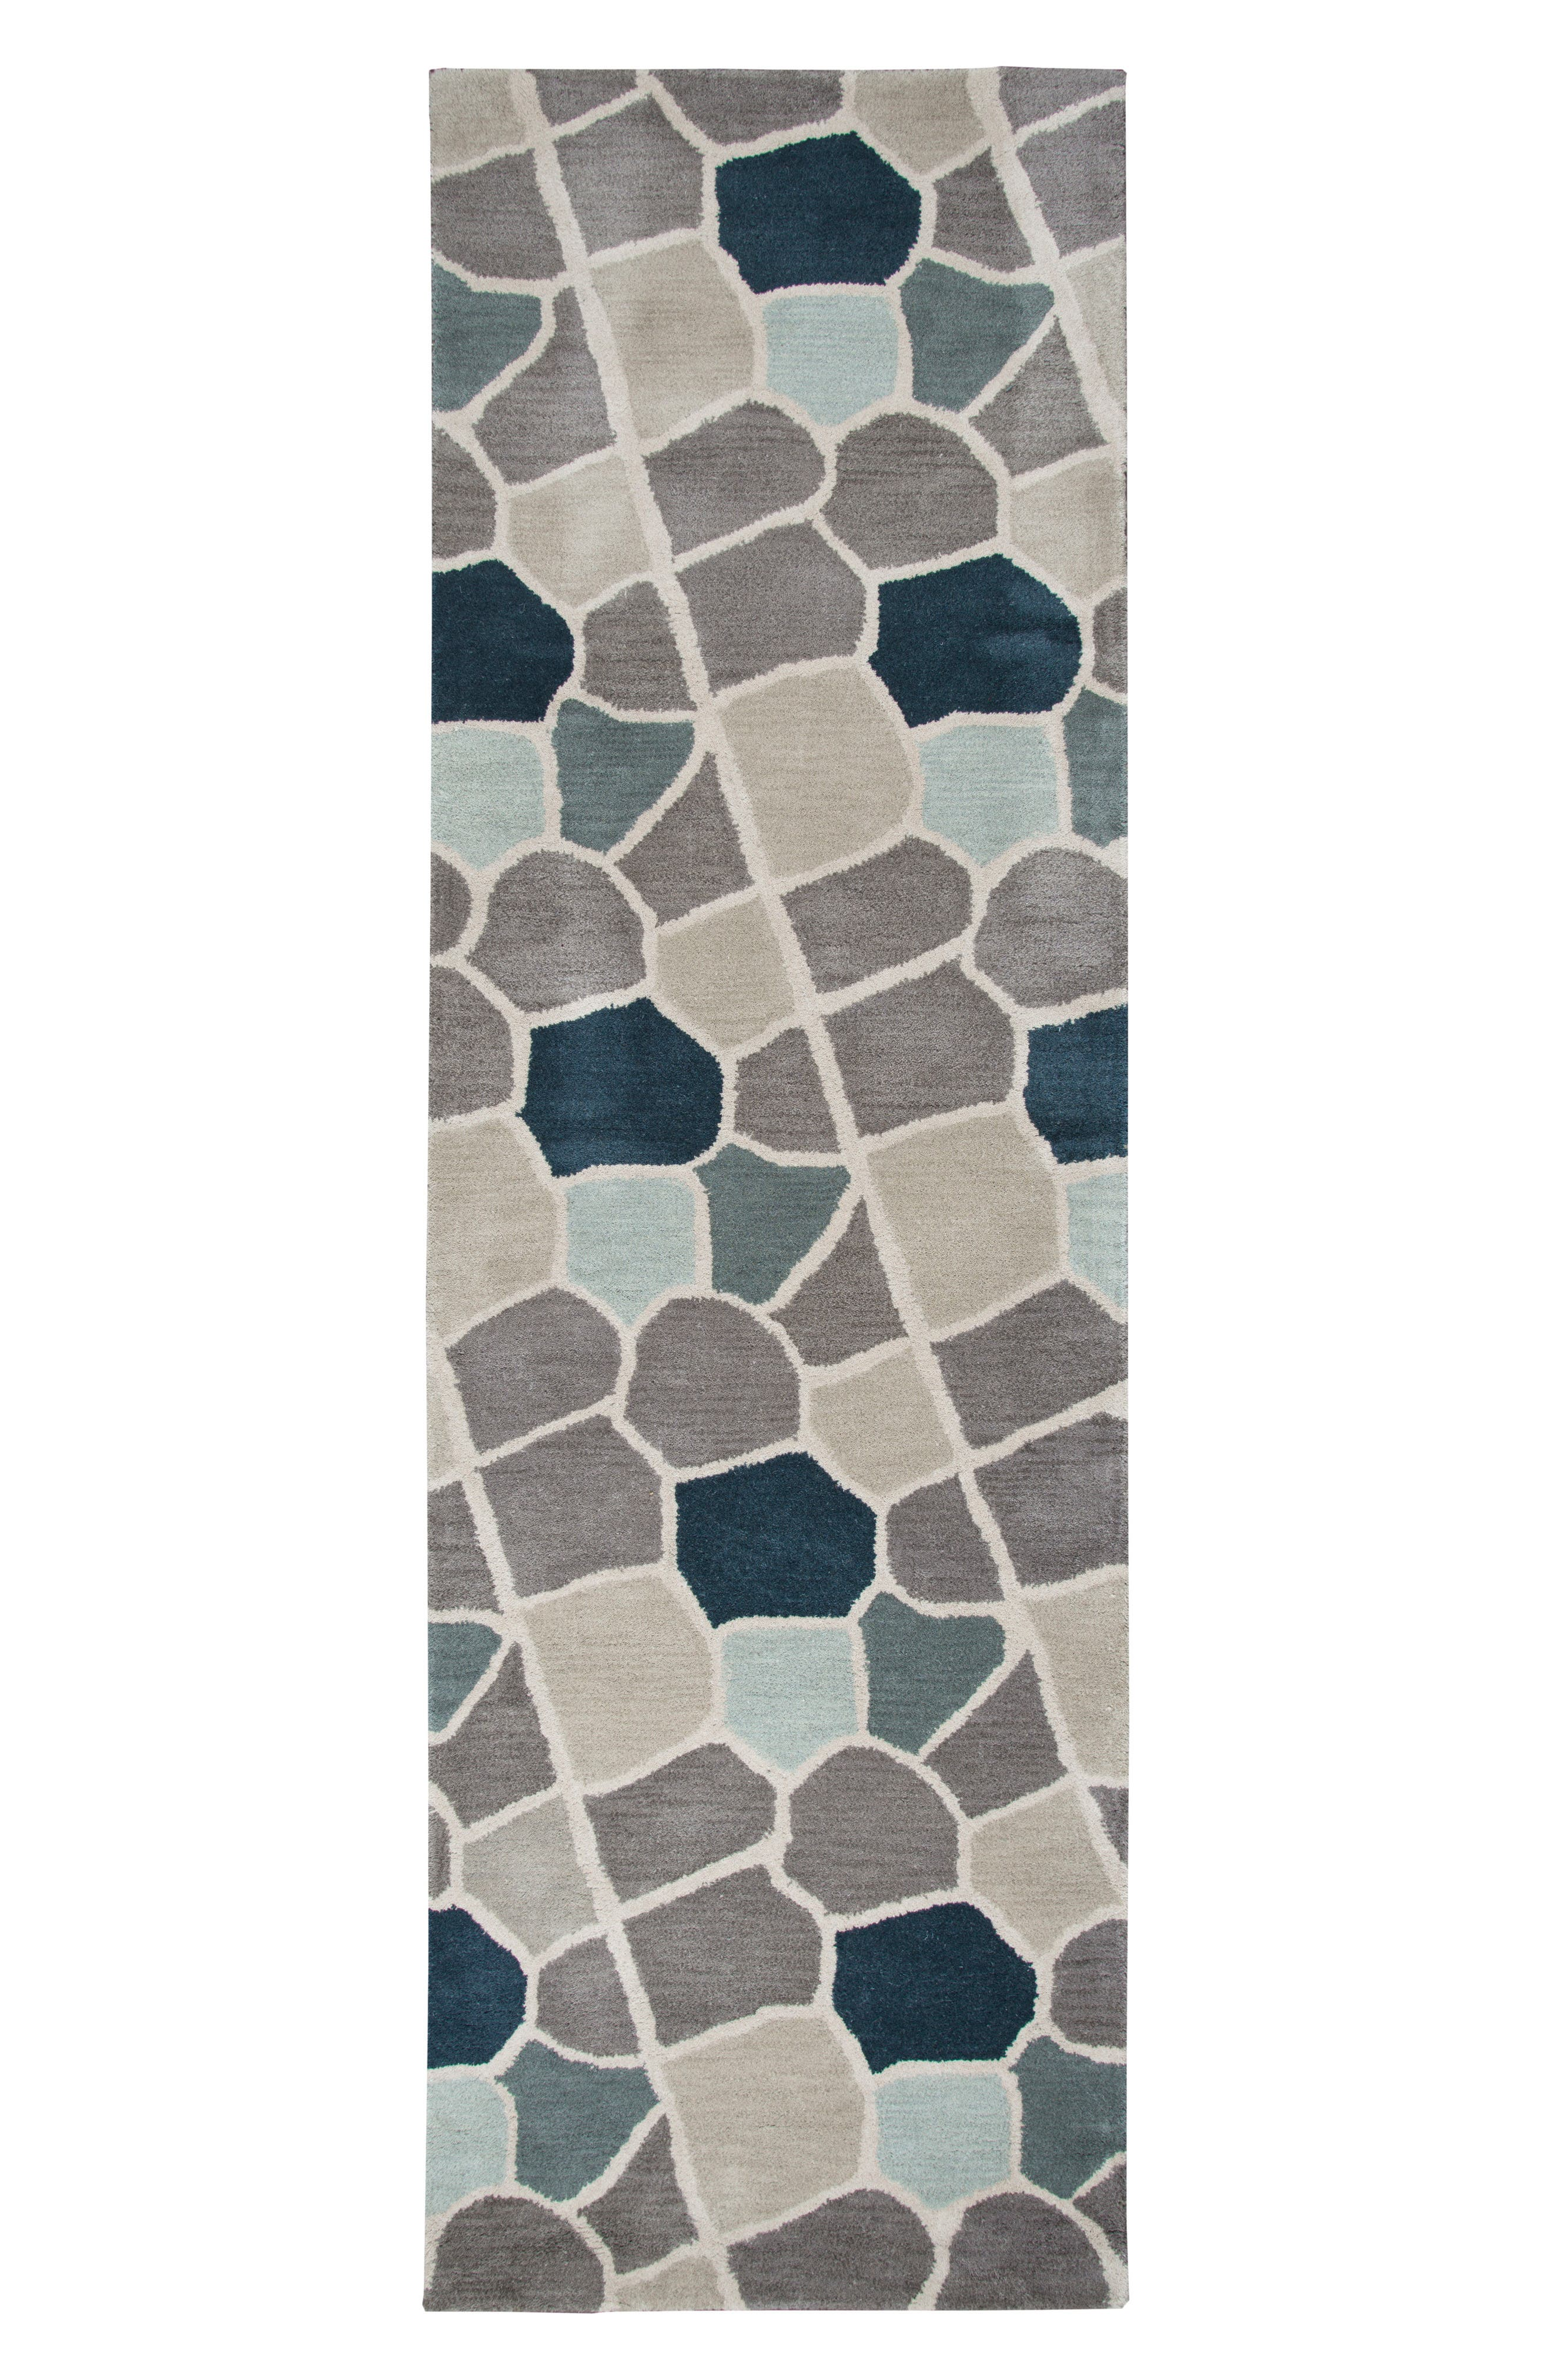 Cobble Geo Hand Tufted Wool Area Rug,                             Alternate thumbnail 3, color,                             020